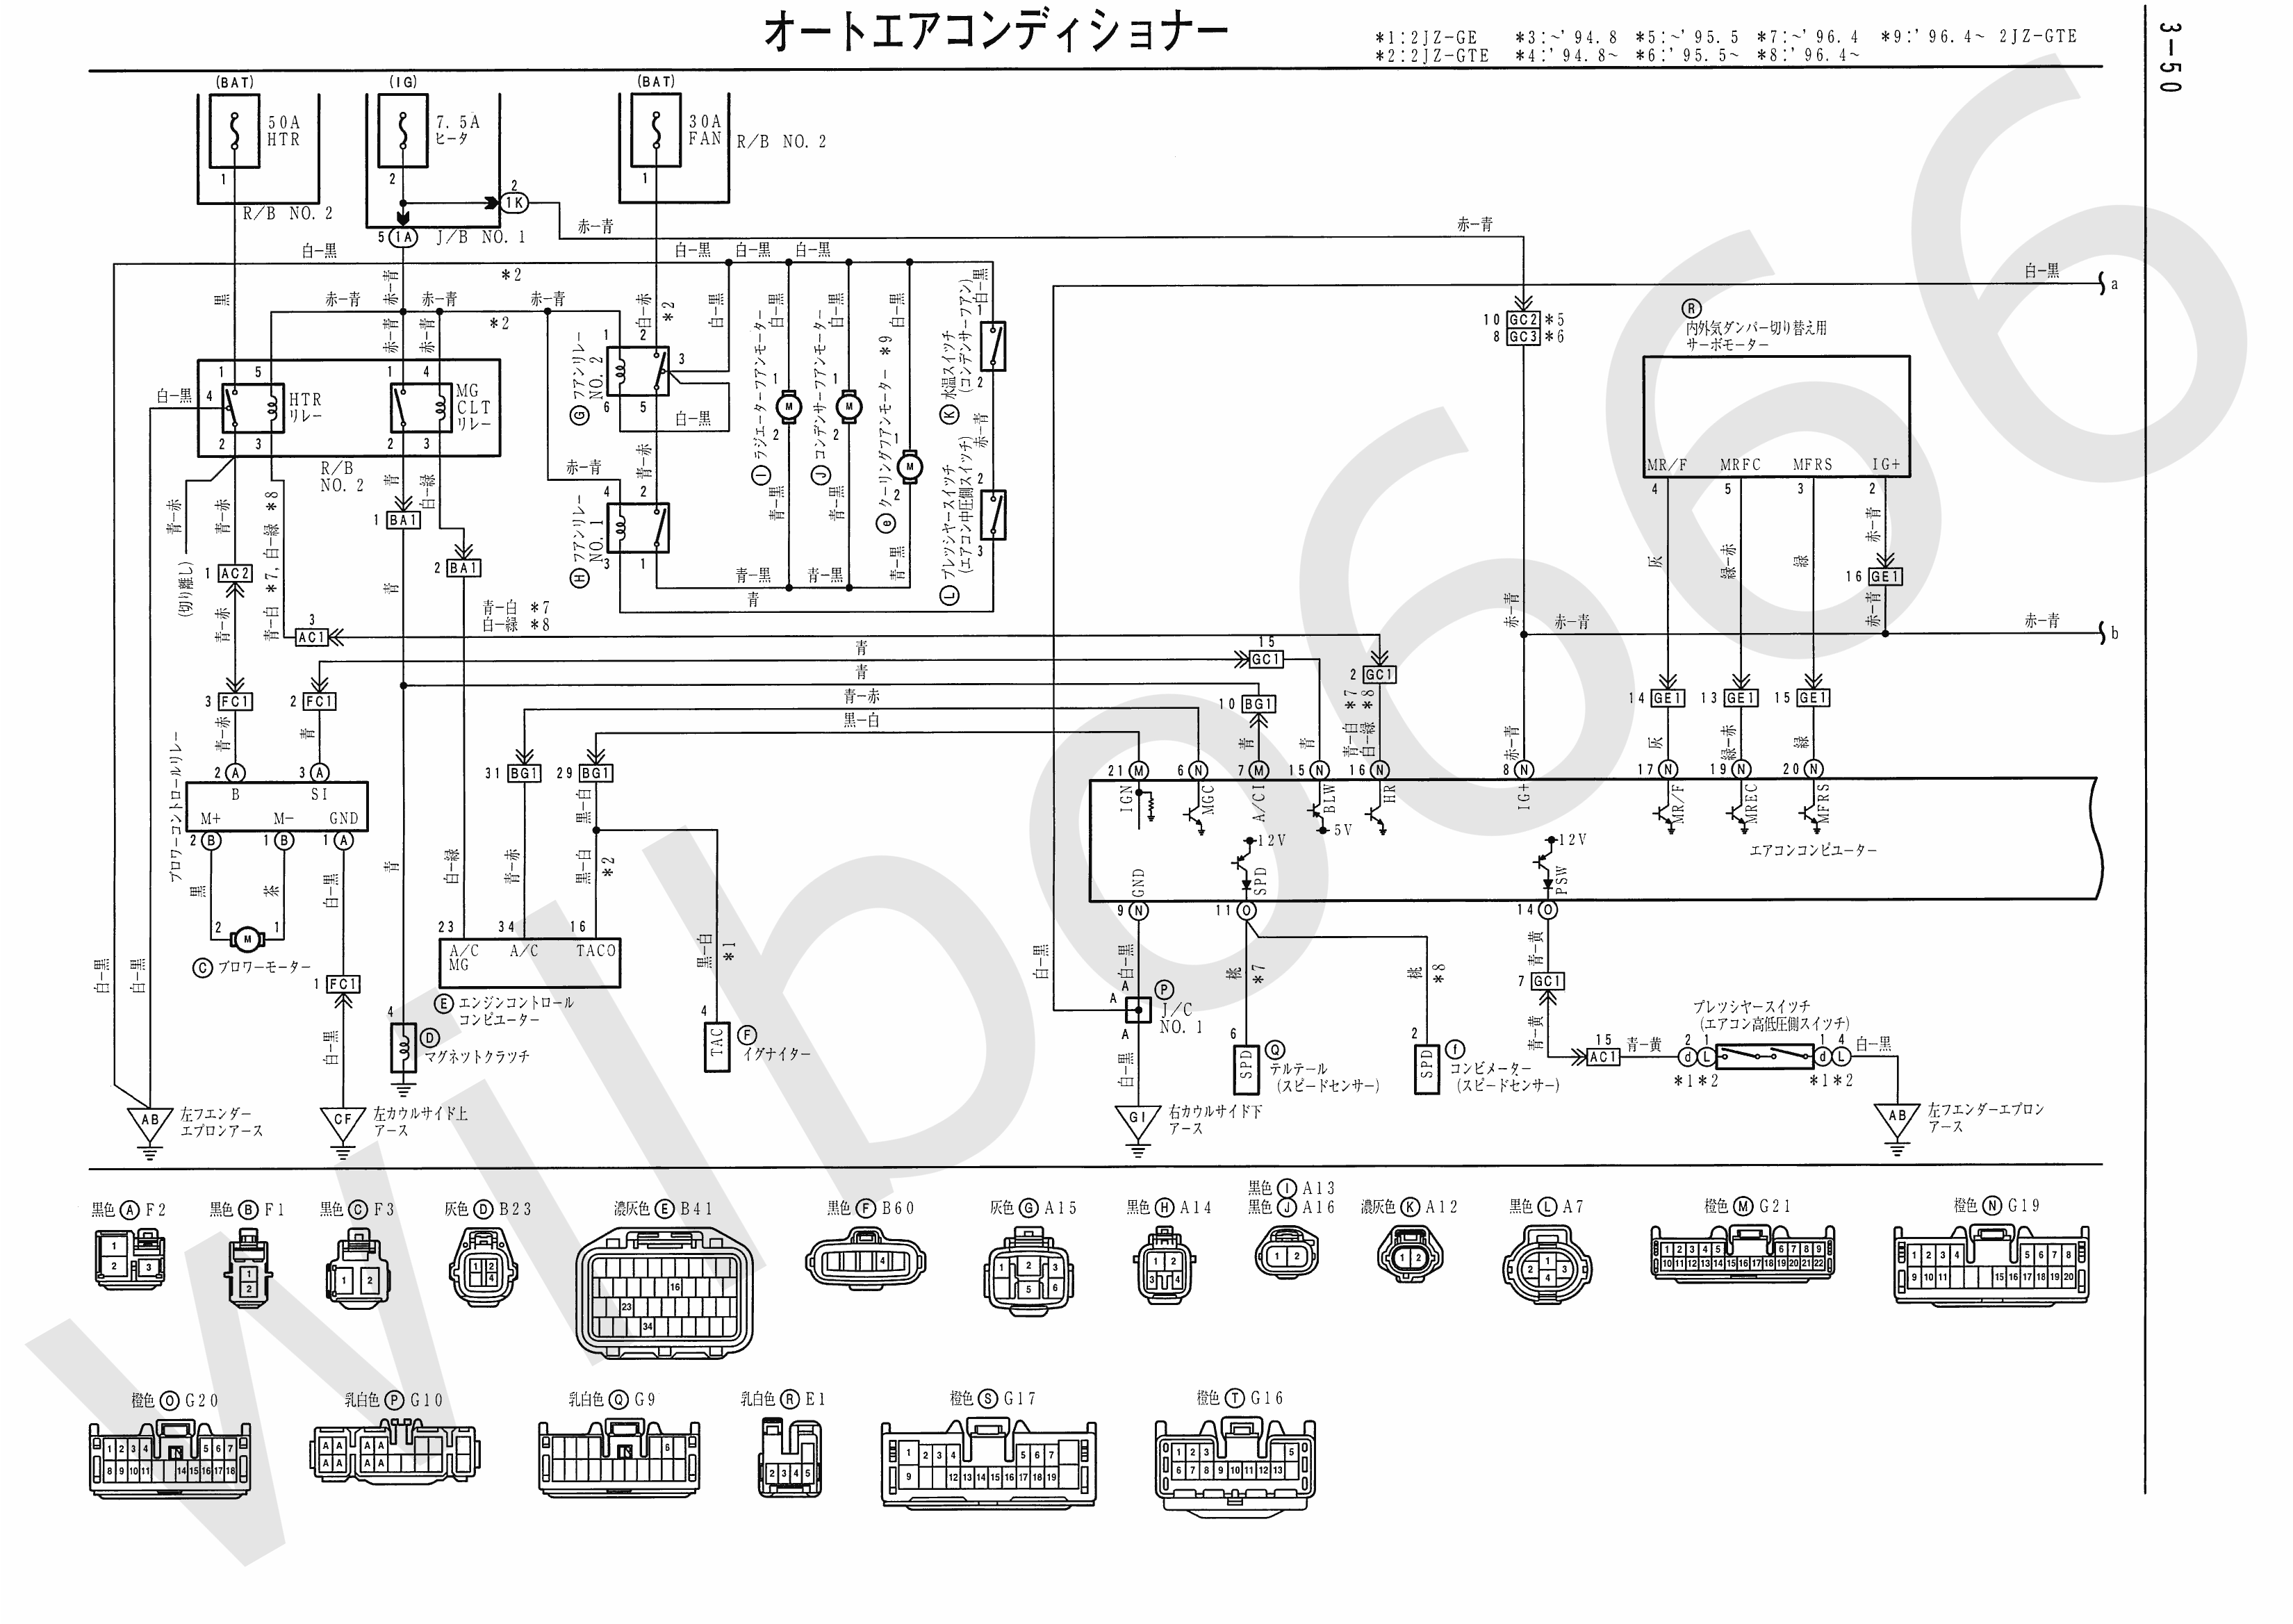 Supra Engine Diagram Wiring 7 Wire Rv Harness Librarywilbo666 2jz Ge Jza80 1972 Cb750 Electrical